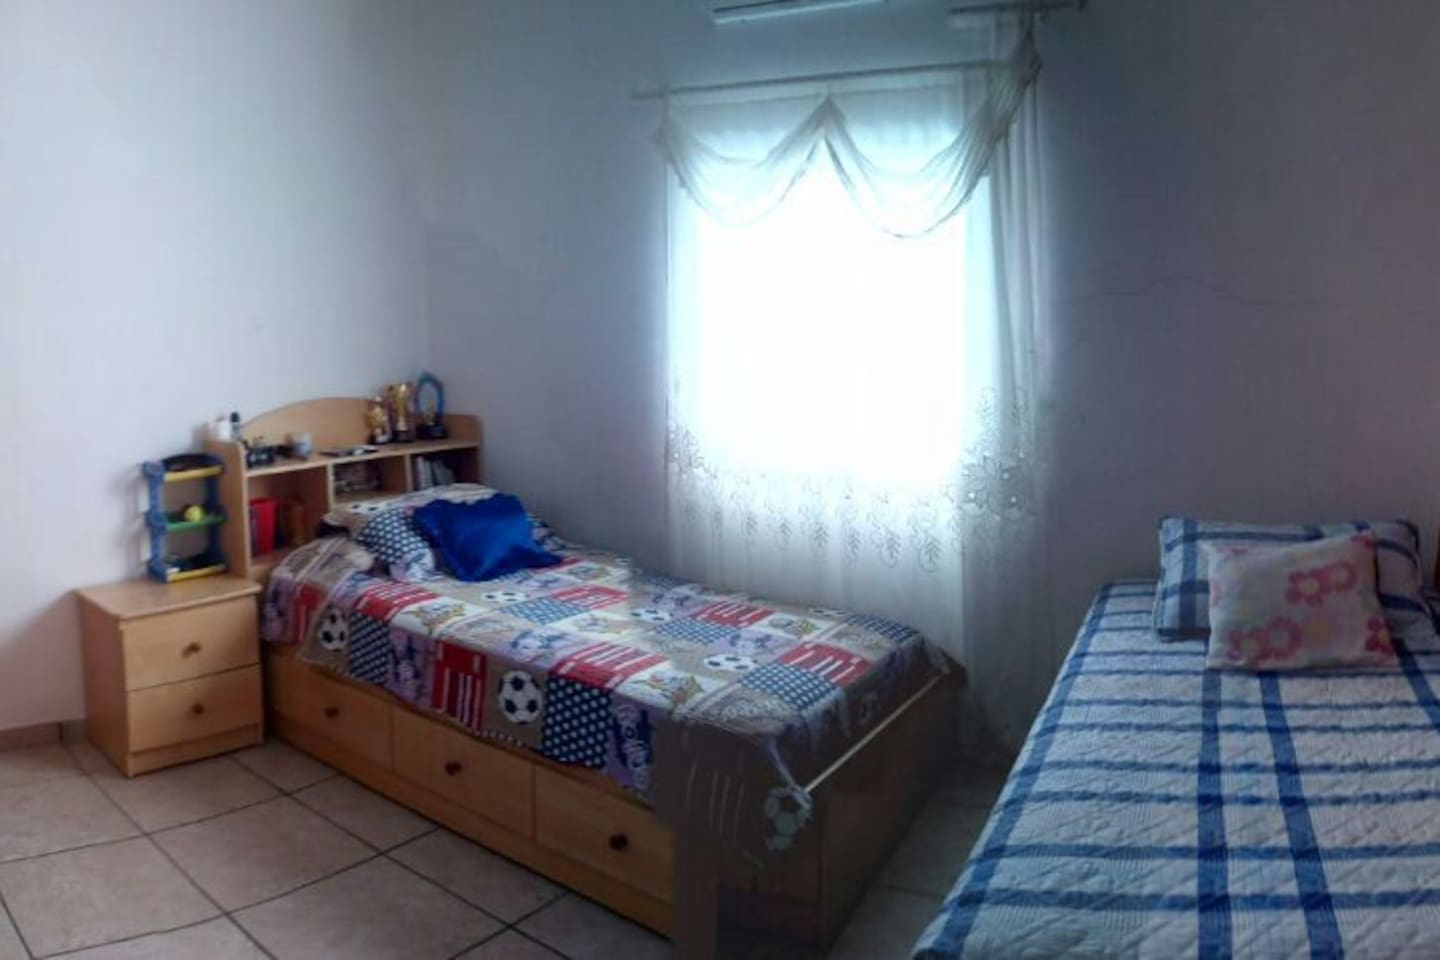 Includes a closet and air conditioner. Has two twin beds and a personal bathroom. Free WiFi and hot water.